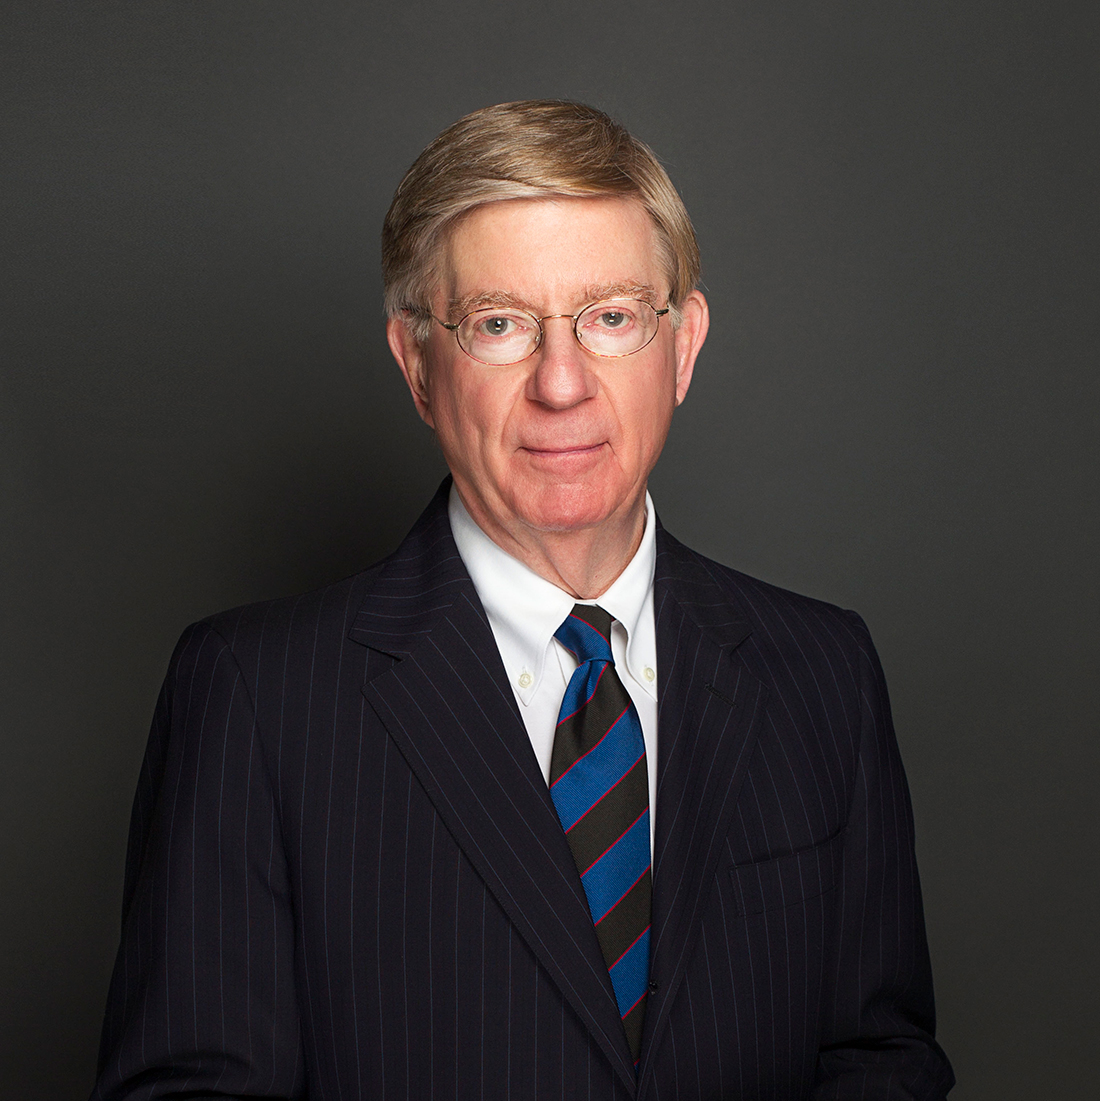 Event - Lecture and Book Signing with George Will 2019